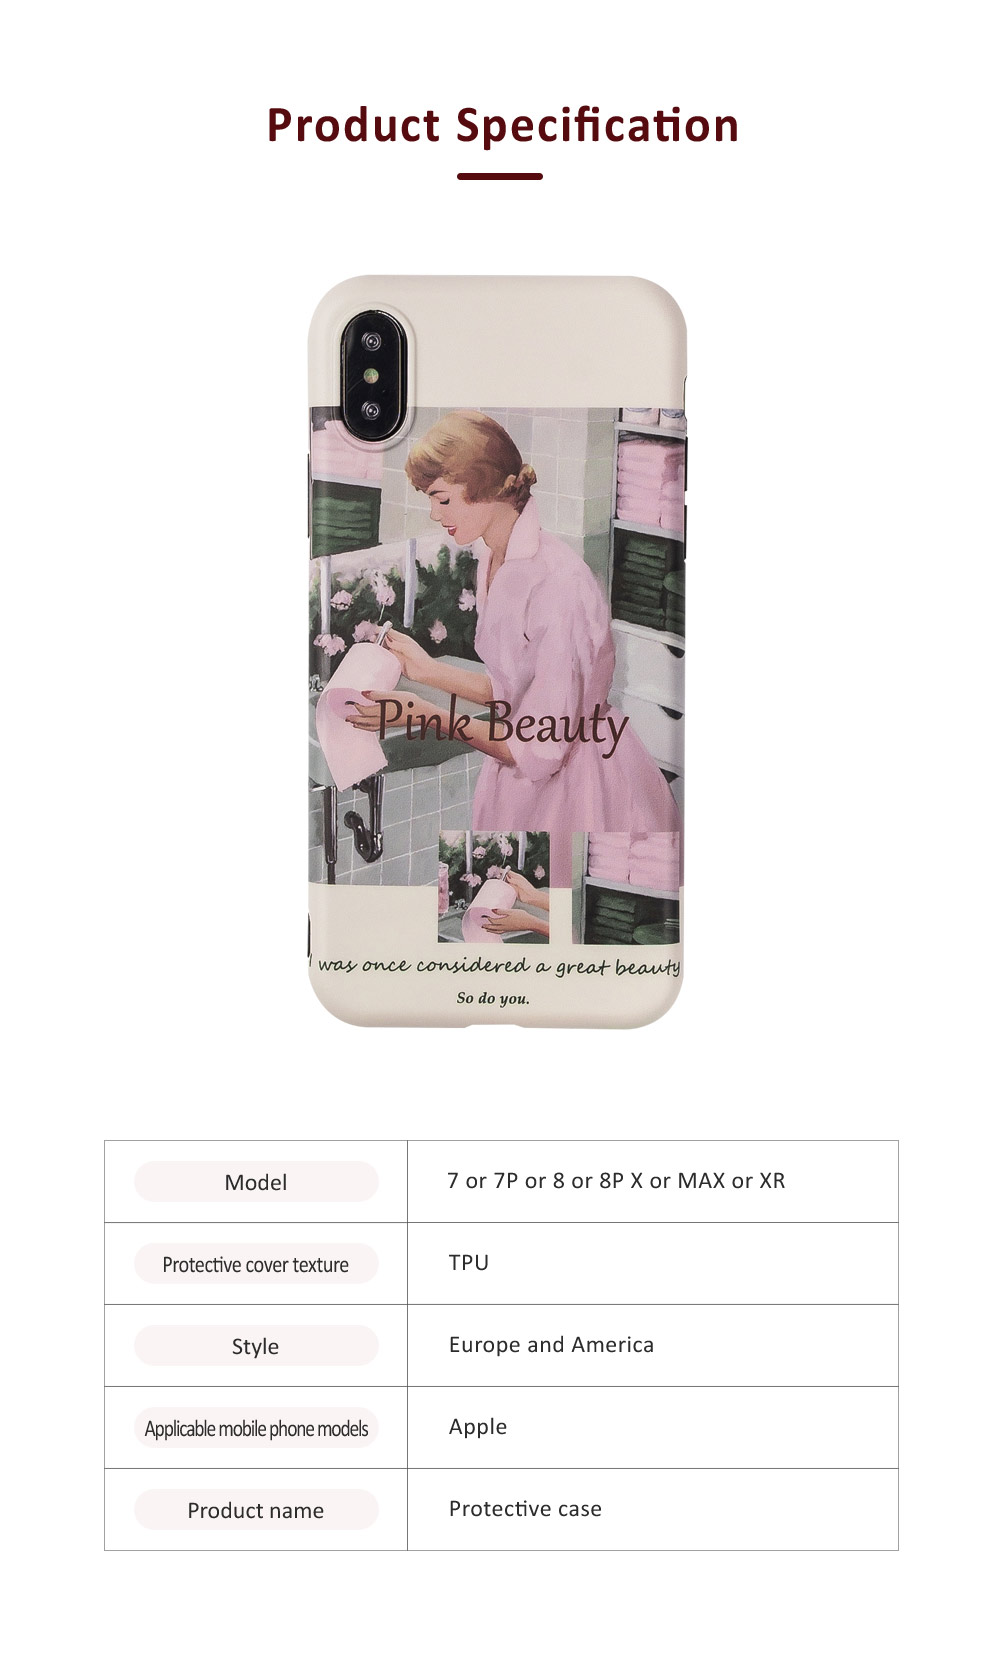 Retro Pink Girl Illustration Phone Case for iPhone 8 7, Elegant and Delicate Protective Case for iPhone XS Max XR X 7 Plus 8 Plus 6